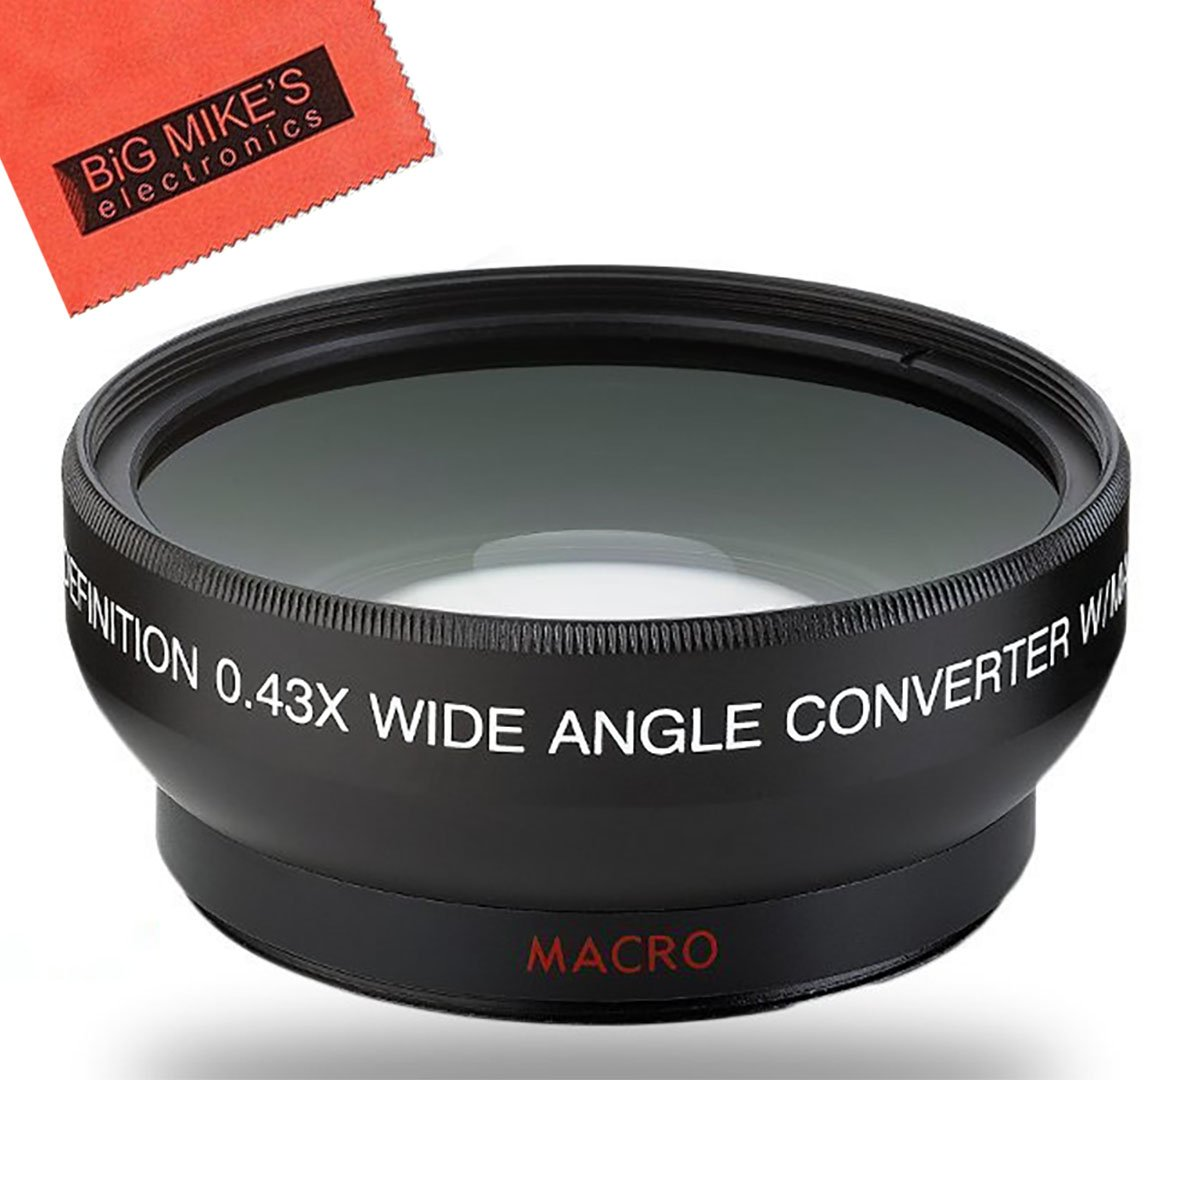 40.5mm Wide Angle Lens for Sony Alpha A5000, A5100, A6000, A6300, A6500, NEX-5TL, NEX-6 Digital Camera That has Sony 16-50mm f/3.5-5.6 OSS Alpha E-mount Retractable Zoom Lens